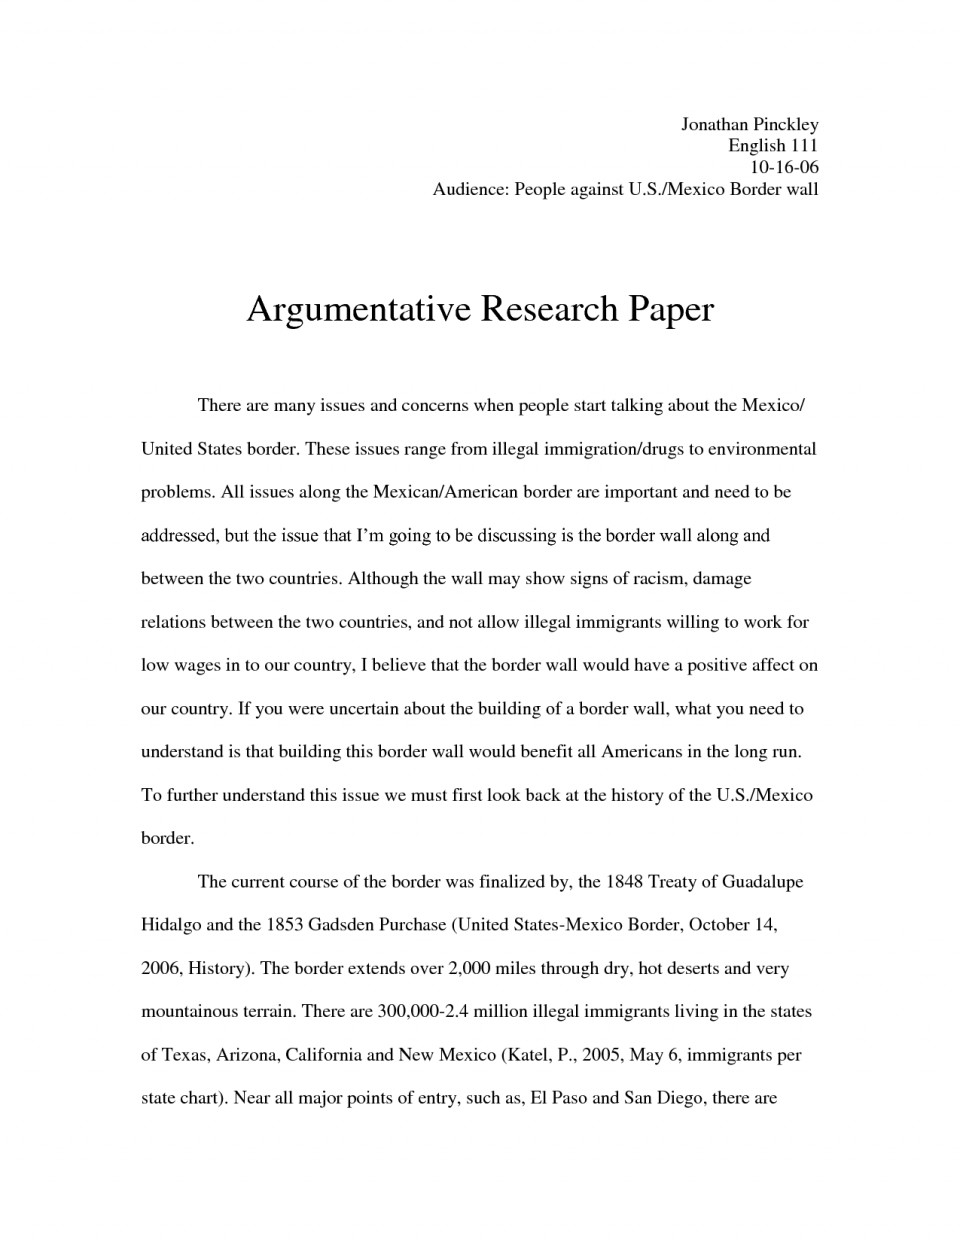 014 Uncategorized Debate20y Argumentative Thesis High School Topics Sentence Starters Outline Worksheet Structure20 For Research Rare A Paper Medical Interesting 960